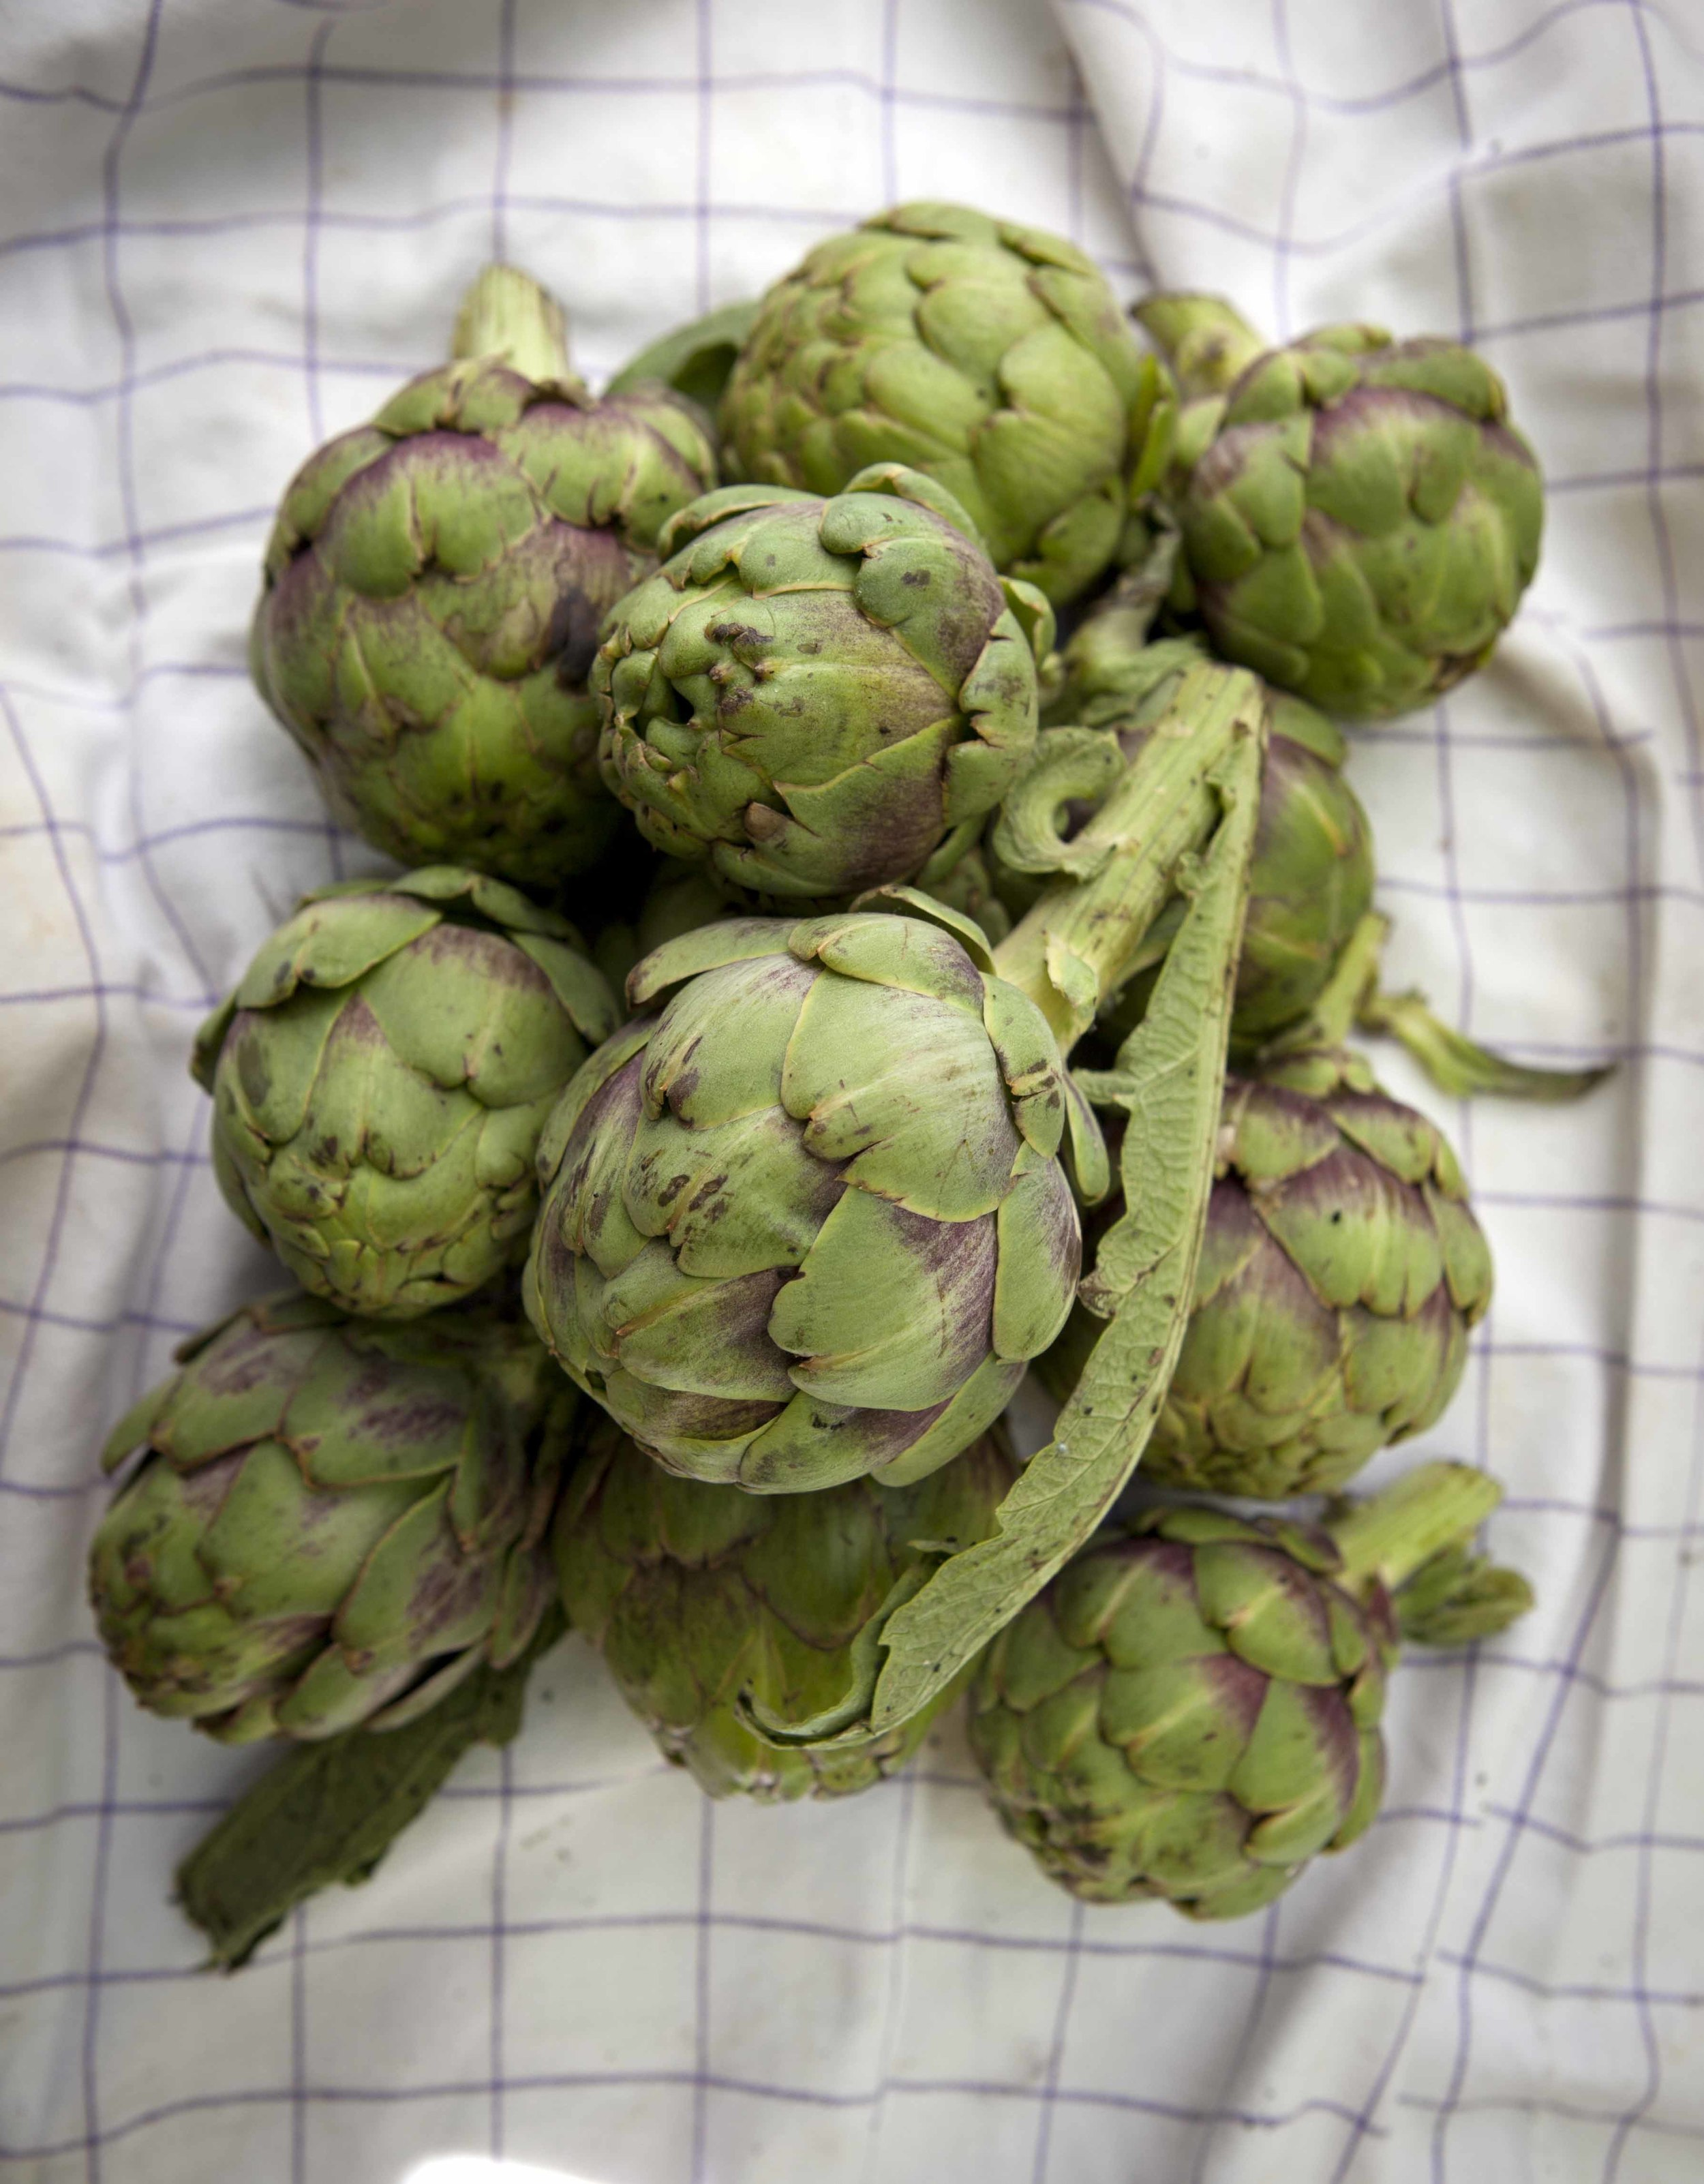 Artichokes for the cookery course near Seville